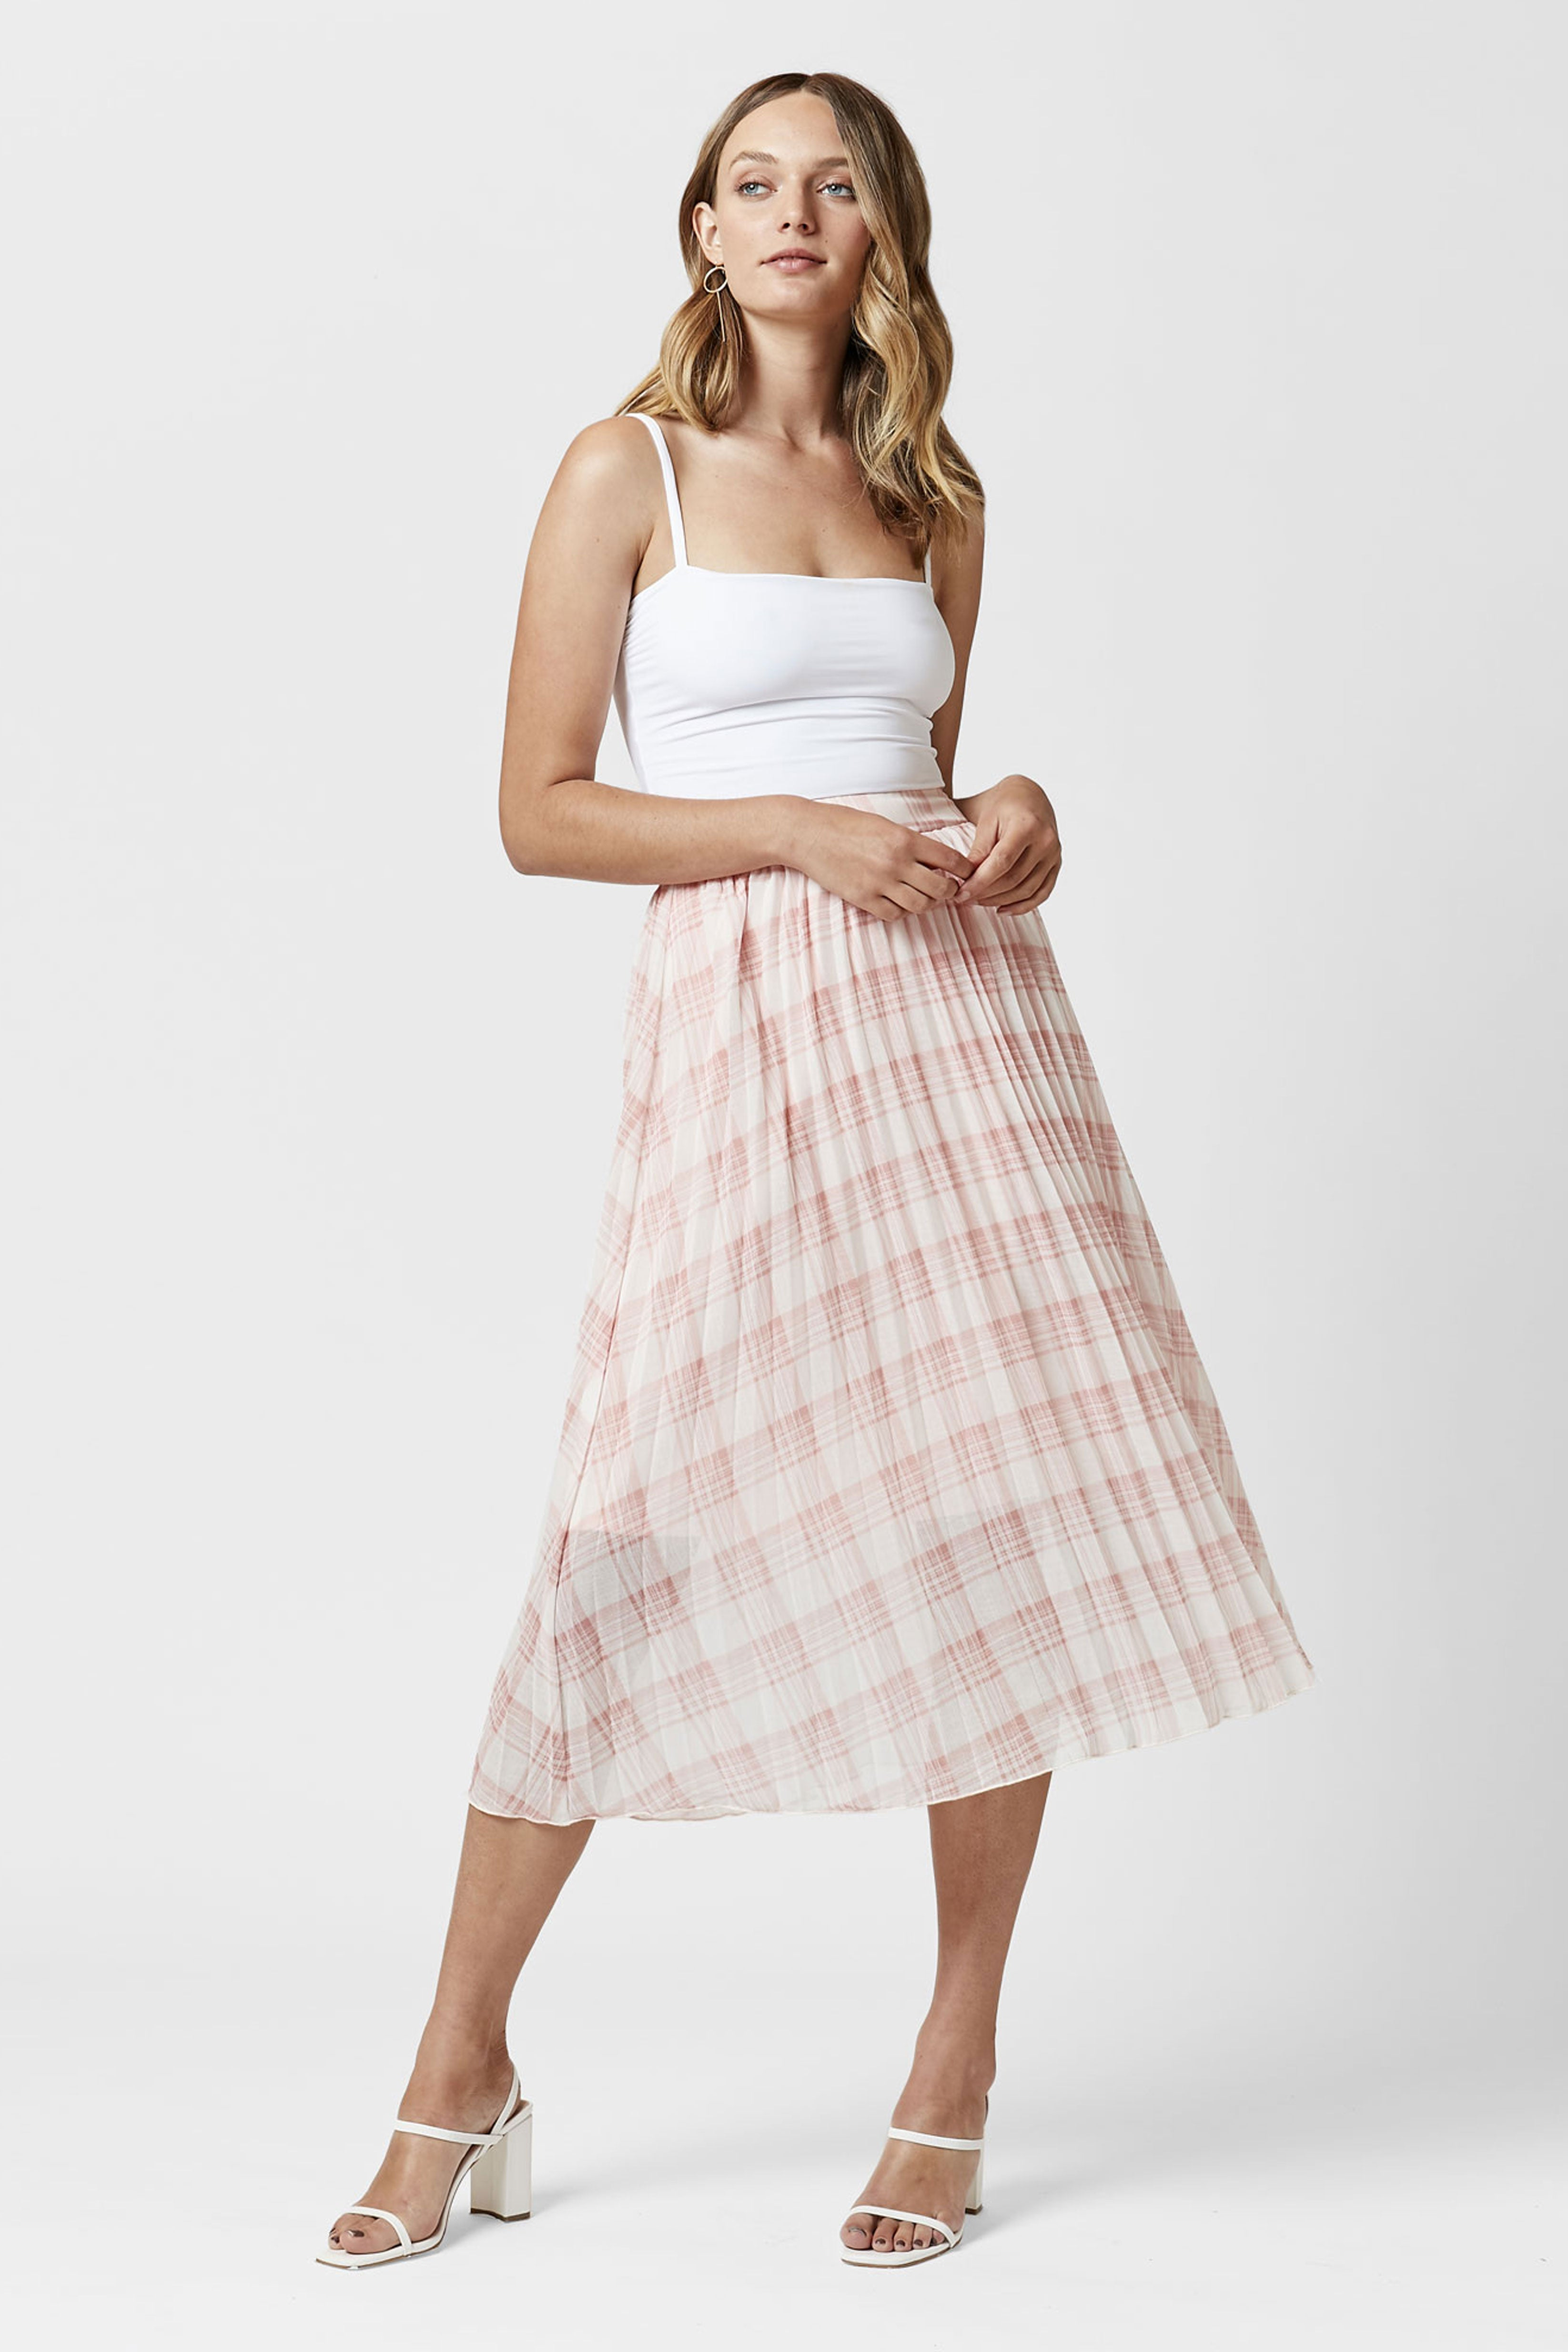 DARLING DAYS SKIRT